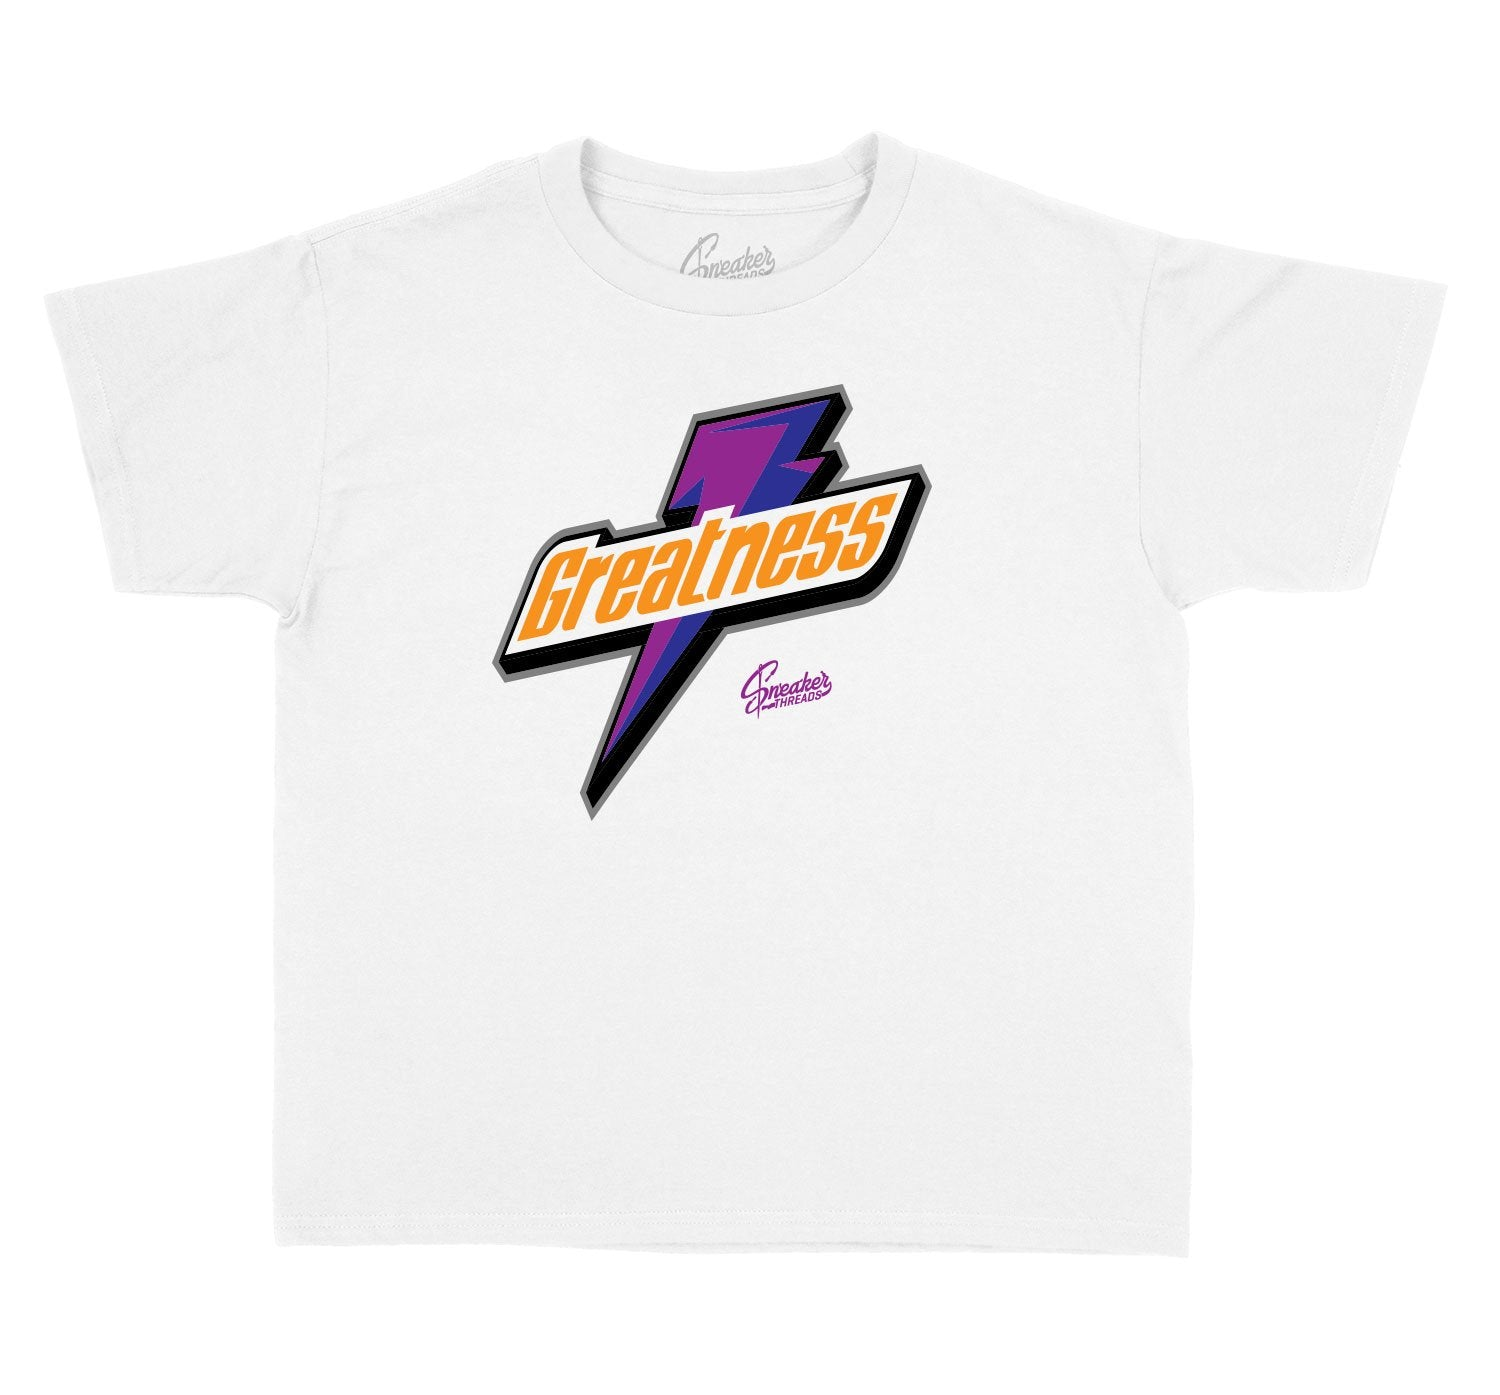 Collection of shirts designed for kids matching Jordan 4 rush violet shoes